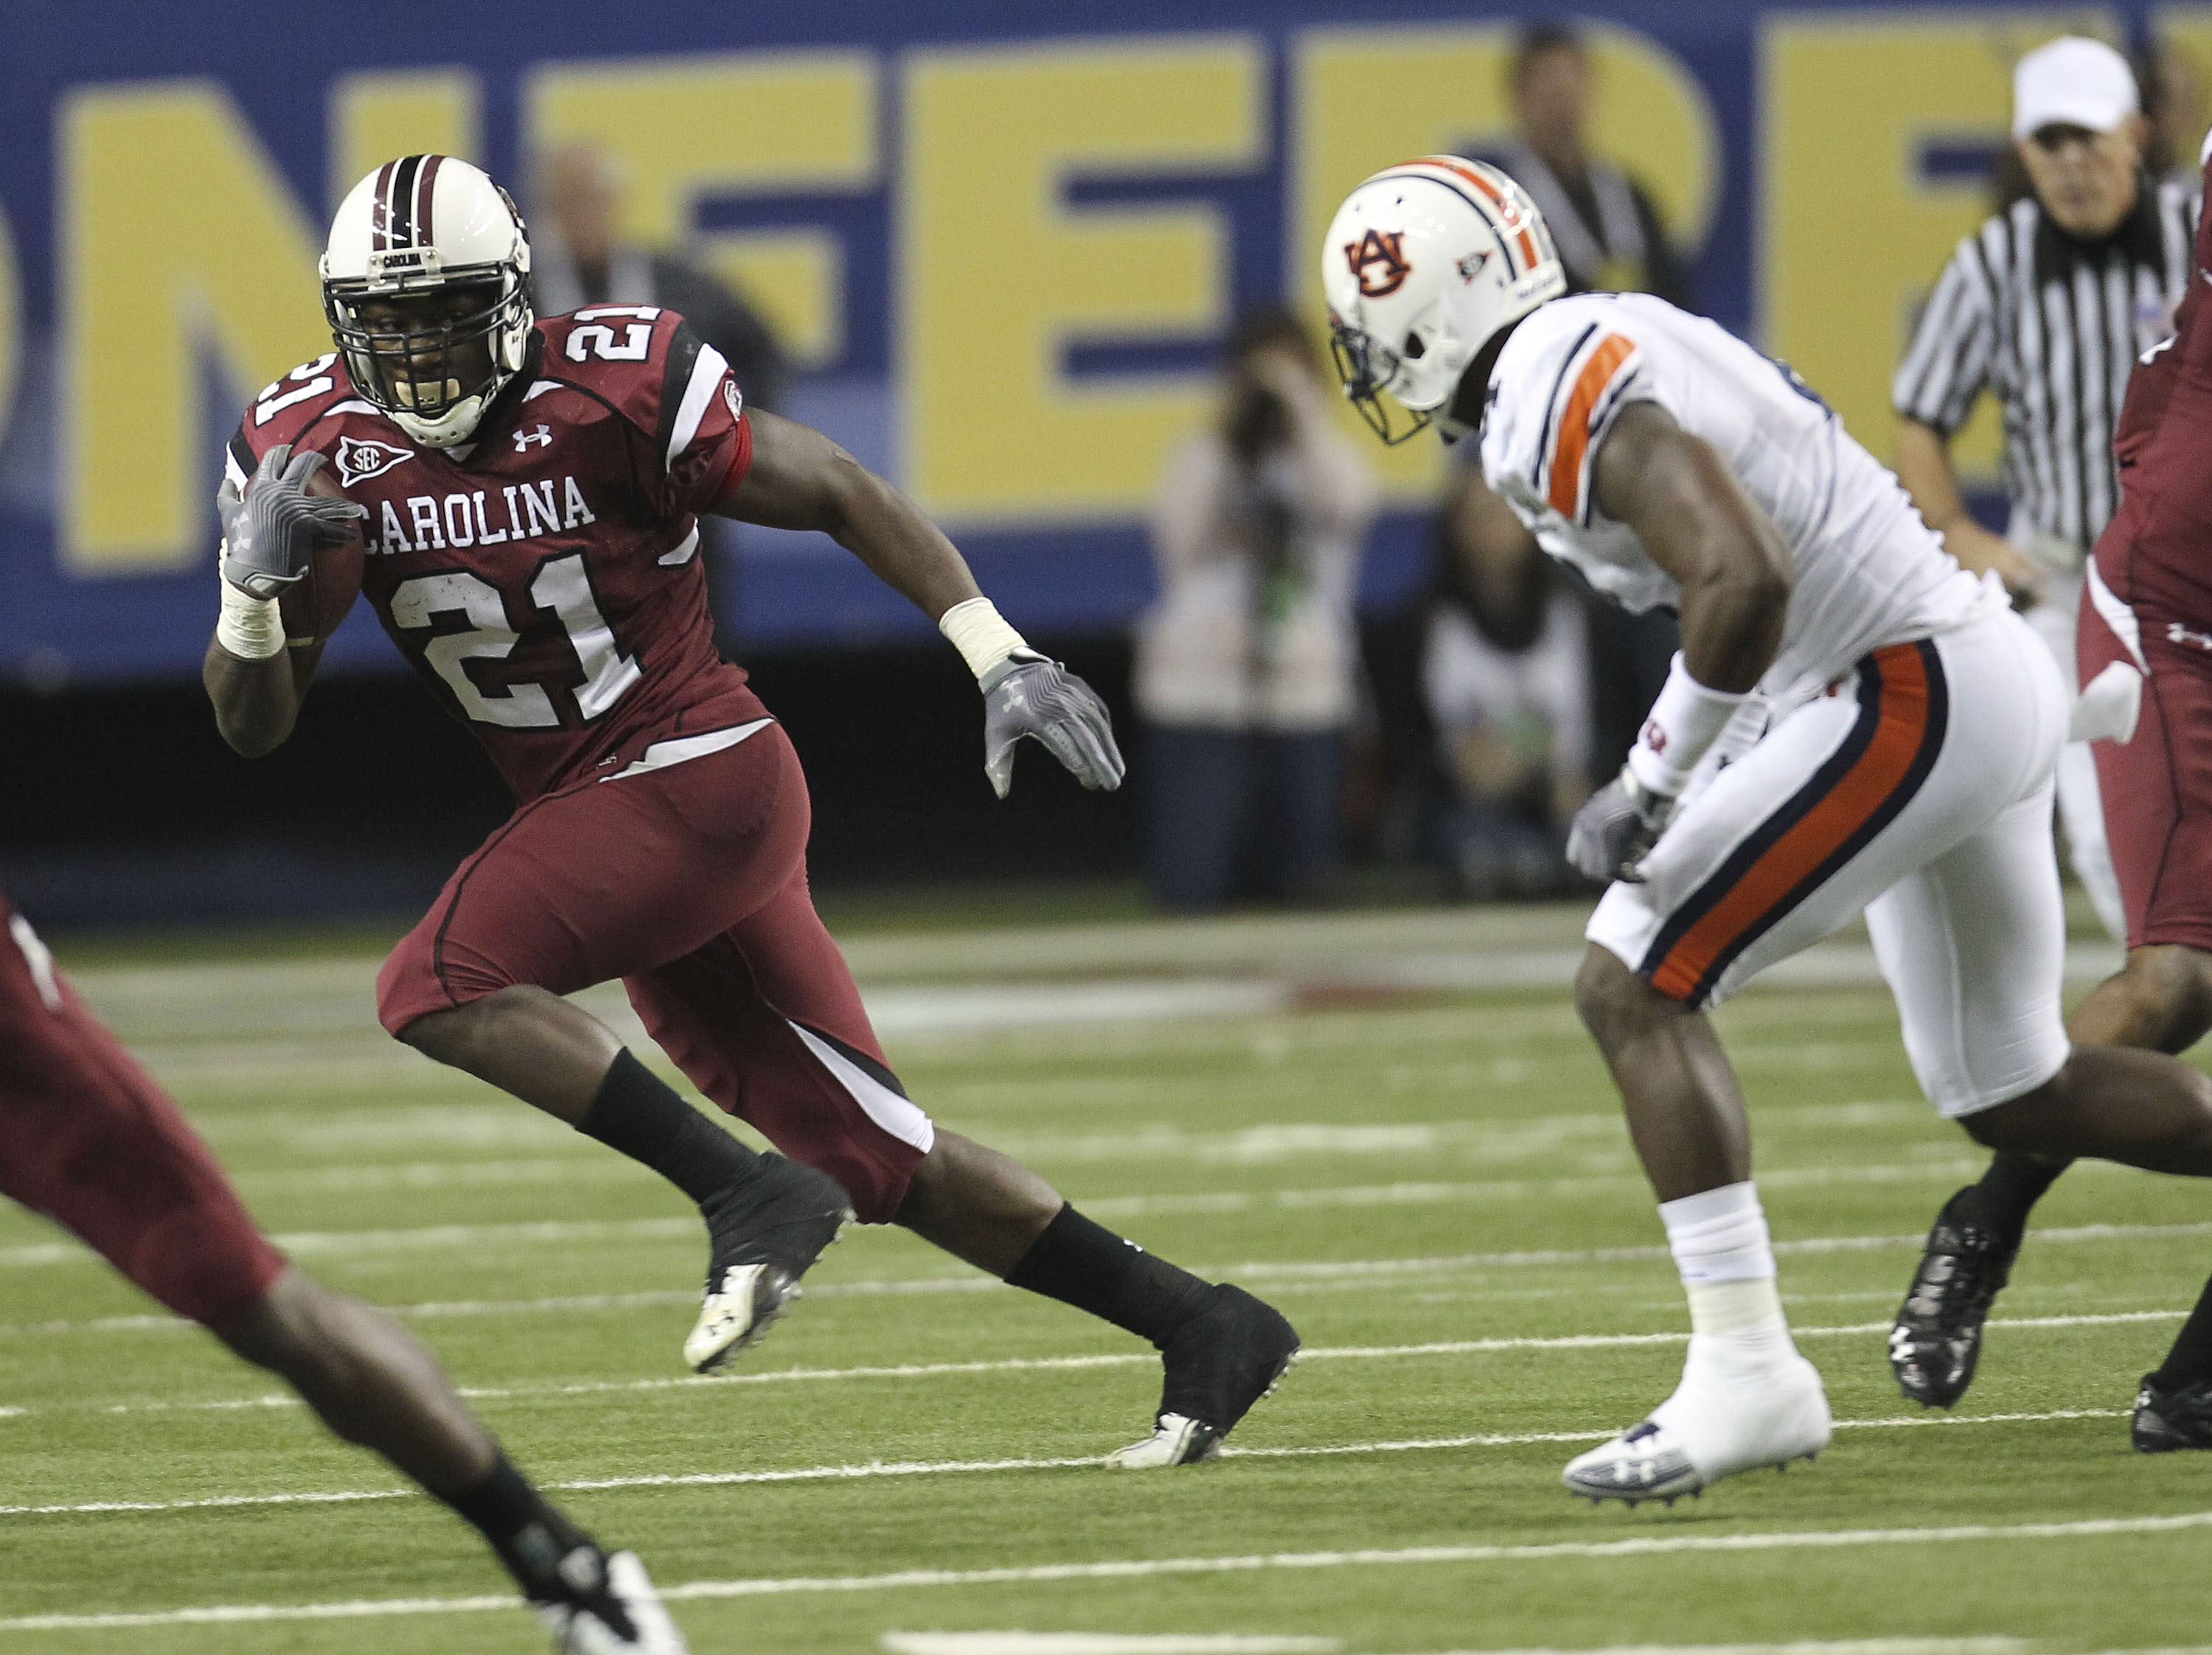 ATLANTA - DECEMBER 04:  Running back Marcus Lattimore #21 of the South Carolina Gamecocks runs with the ball during the 2010 SEC Championship against the Auburn Tigers at Georgia Dome on December 4, 2010 in Atlanta, Georgia.  (Photo by Mike Zarrilli/Getty